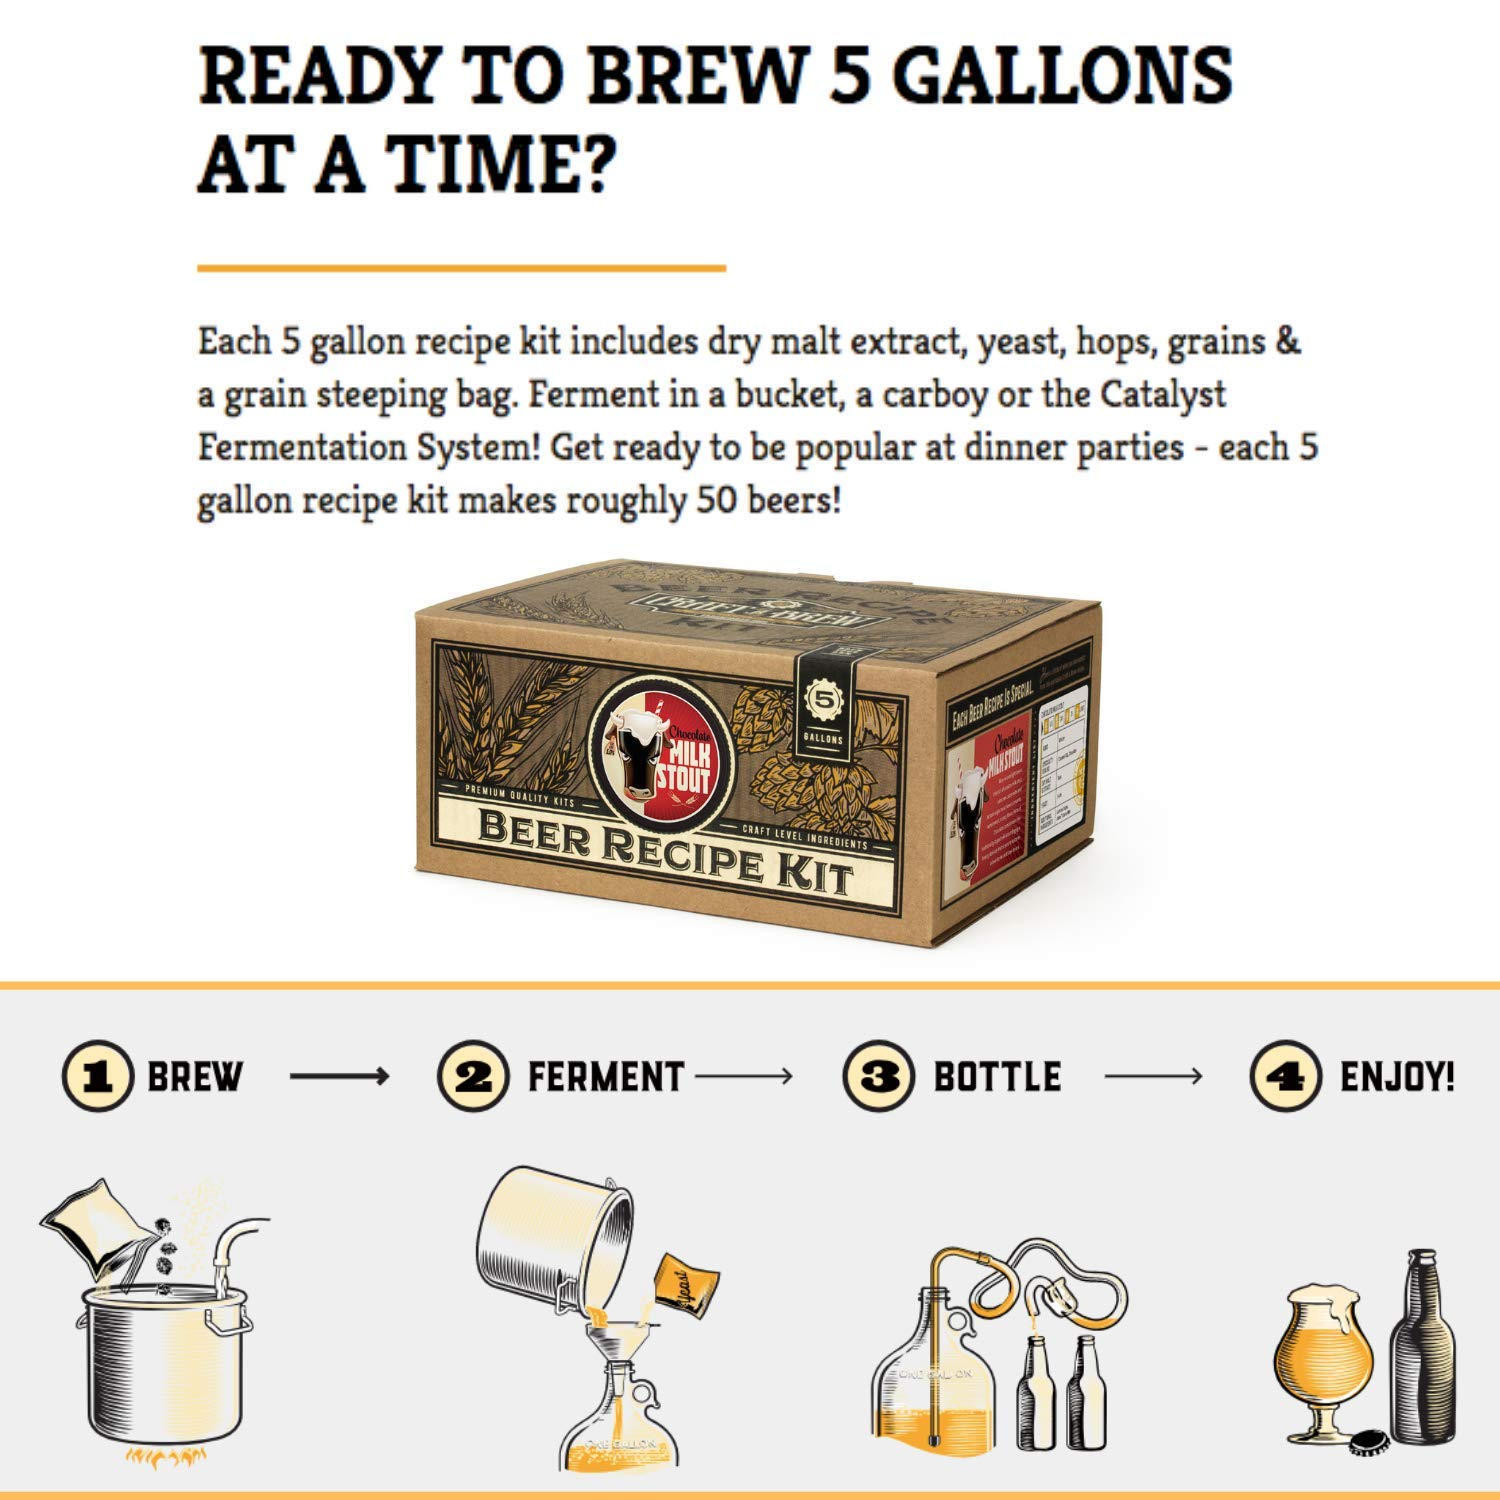 Home Brew Kit – Craft a Brew 5 Gallon Beer Recipe Chocolate Milk Stout Beer Kit – Make Your Own Beer with Home Brewing 5 Gallon Kits – Home Brewing Ingredient Kit by Craft A Brew (Image #2)